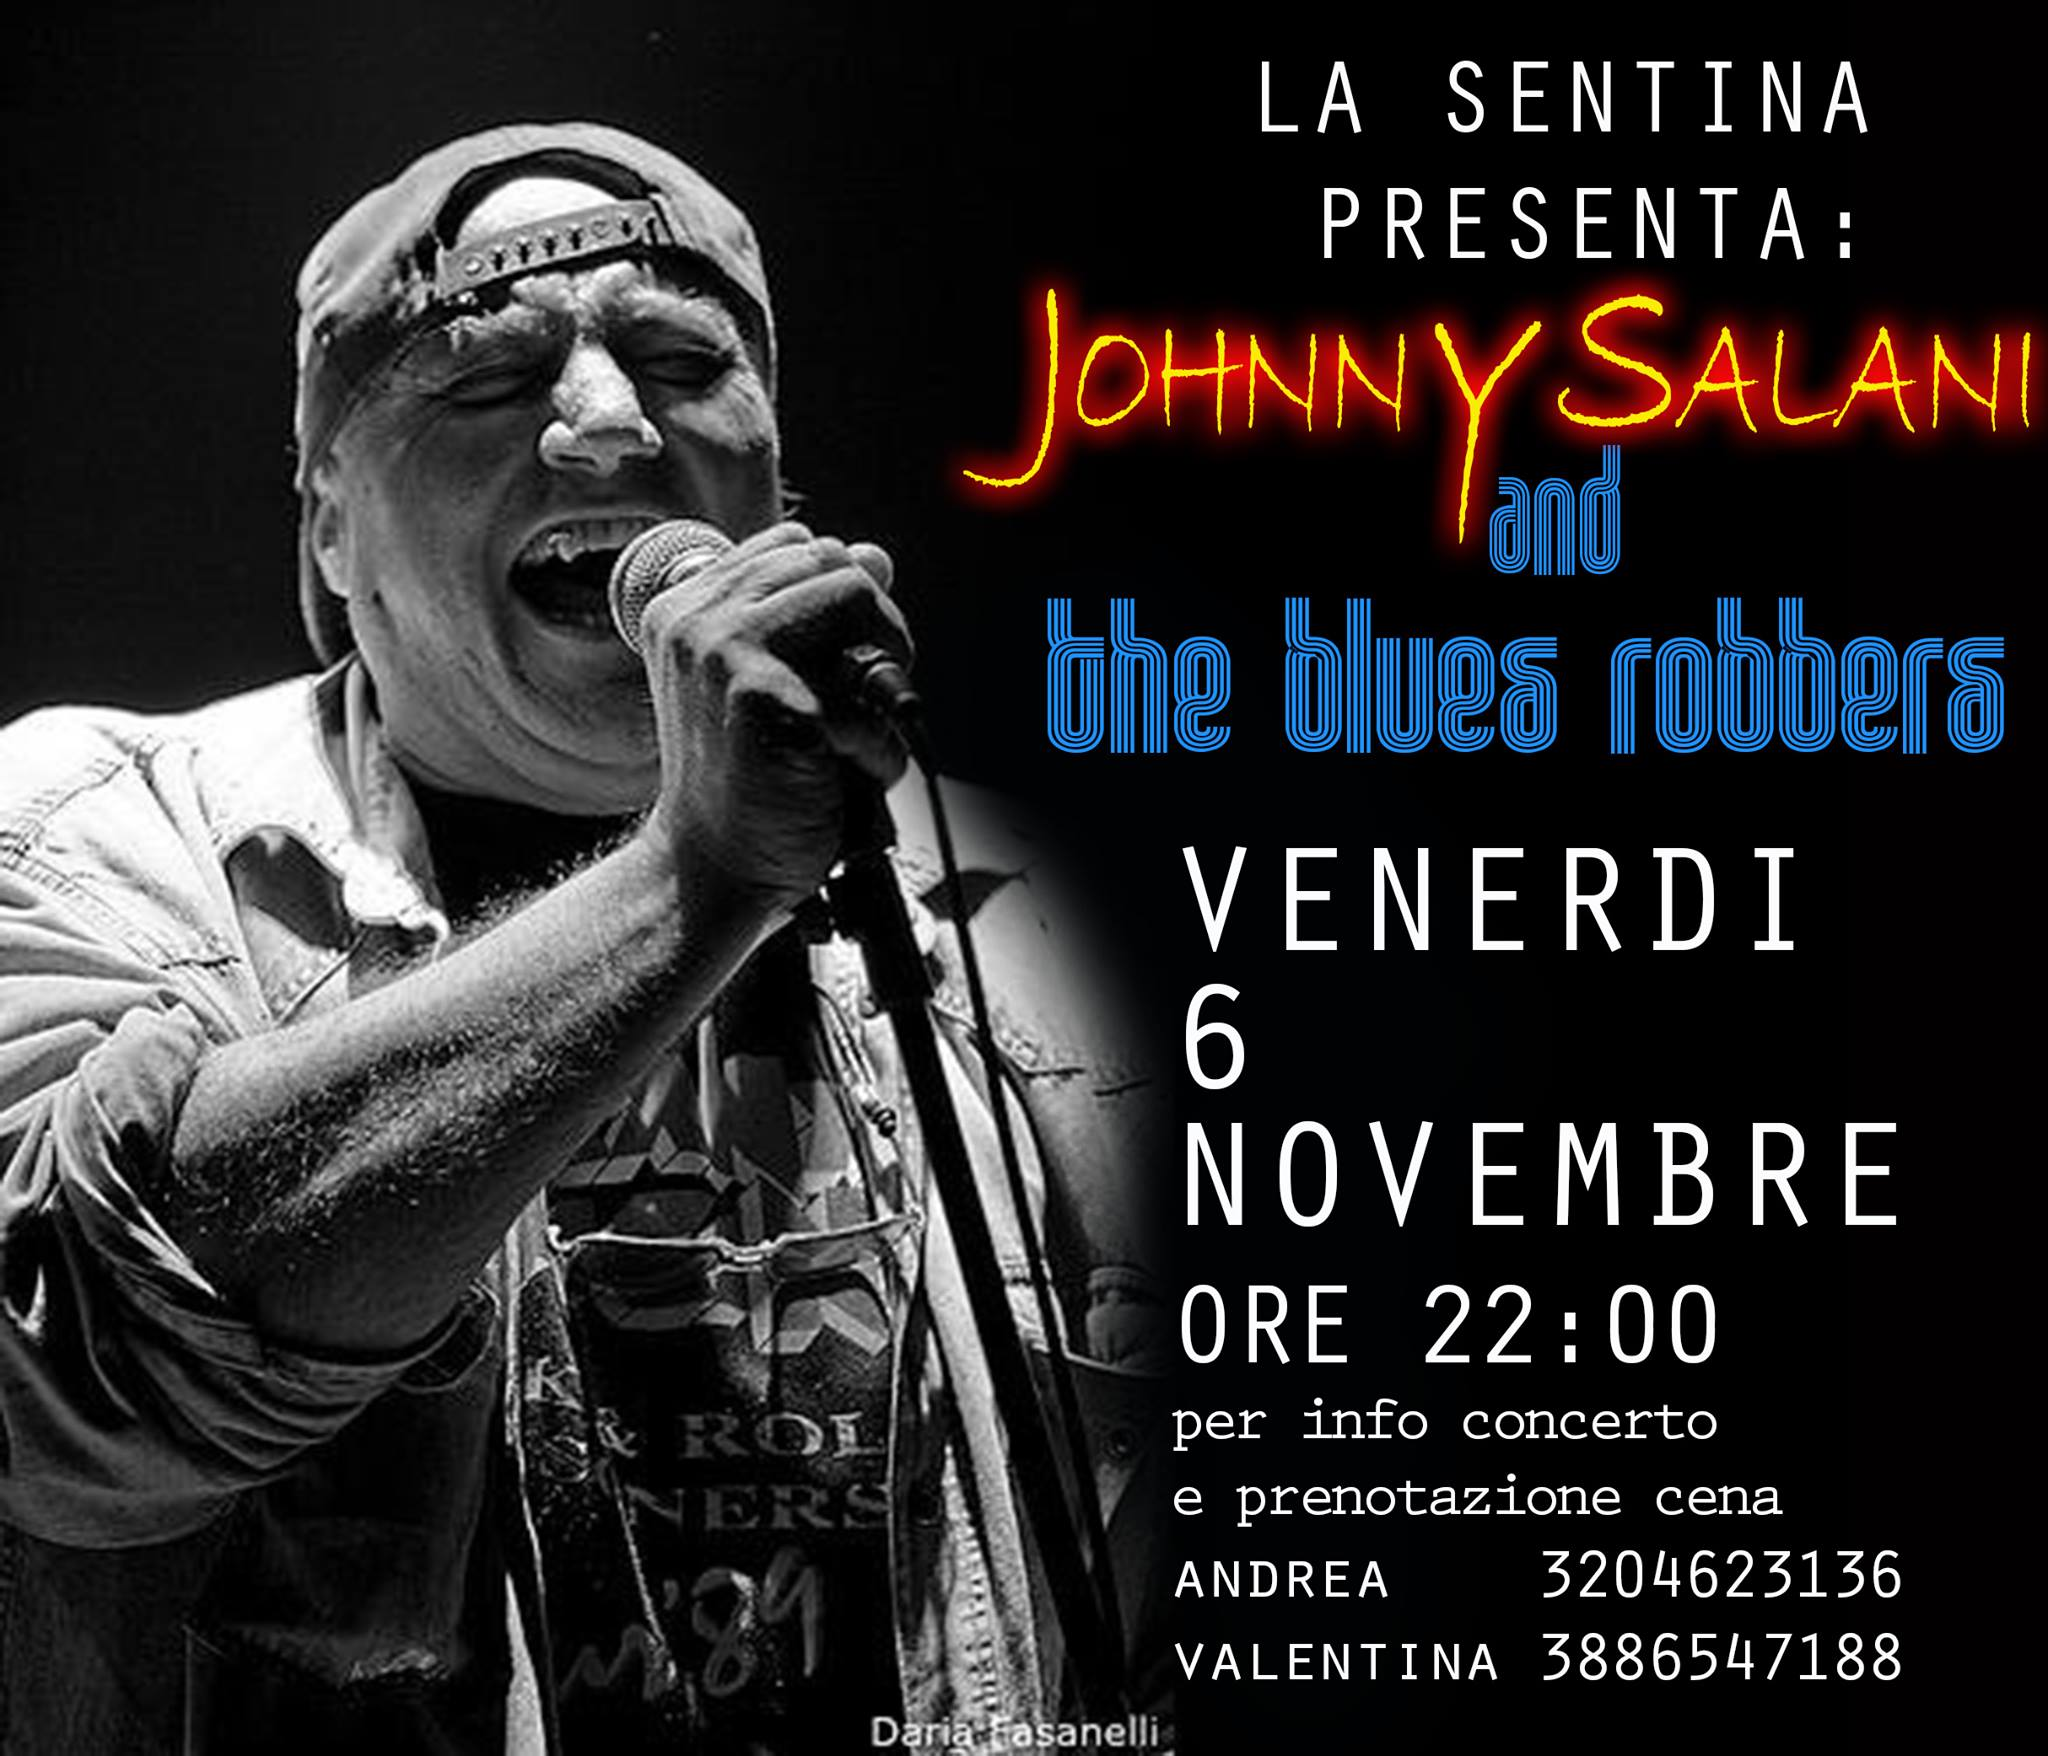 JOHNNY SALANI & The blues robbers @ Circolo La Sentina